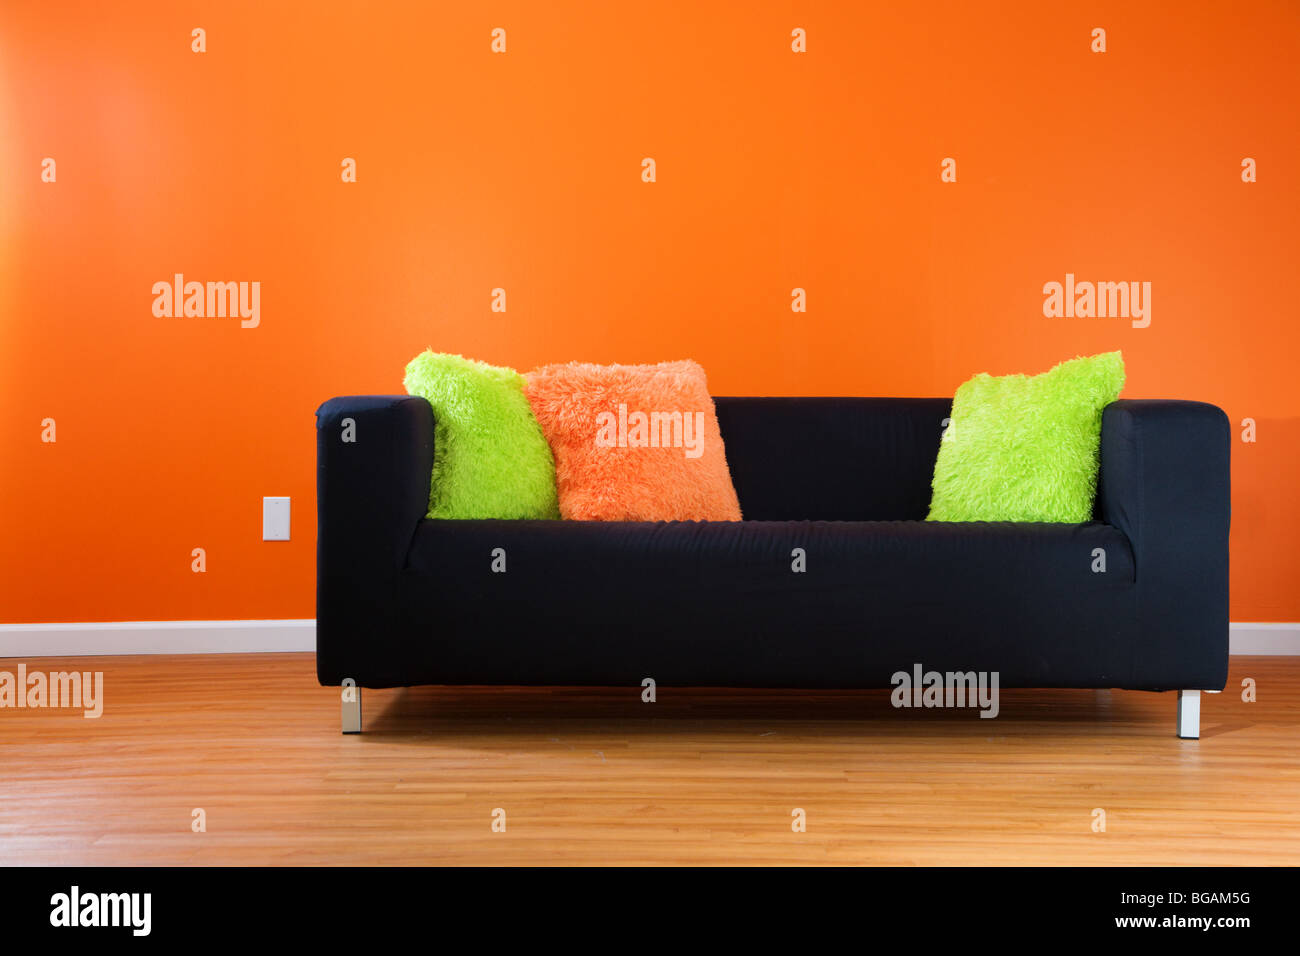 Orange modern living room - Contemporary Black Couch Against Bright Orange Wall In A Modern Living Room